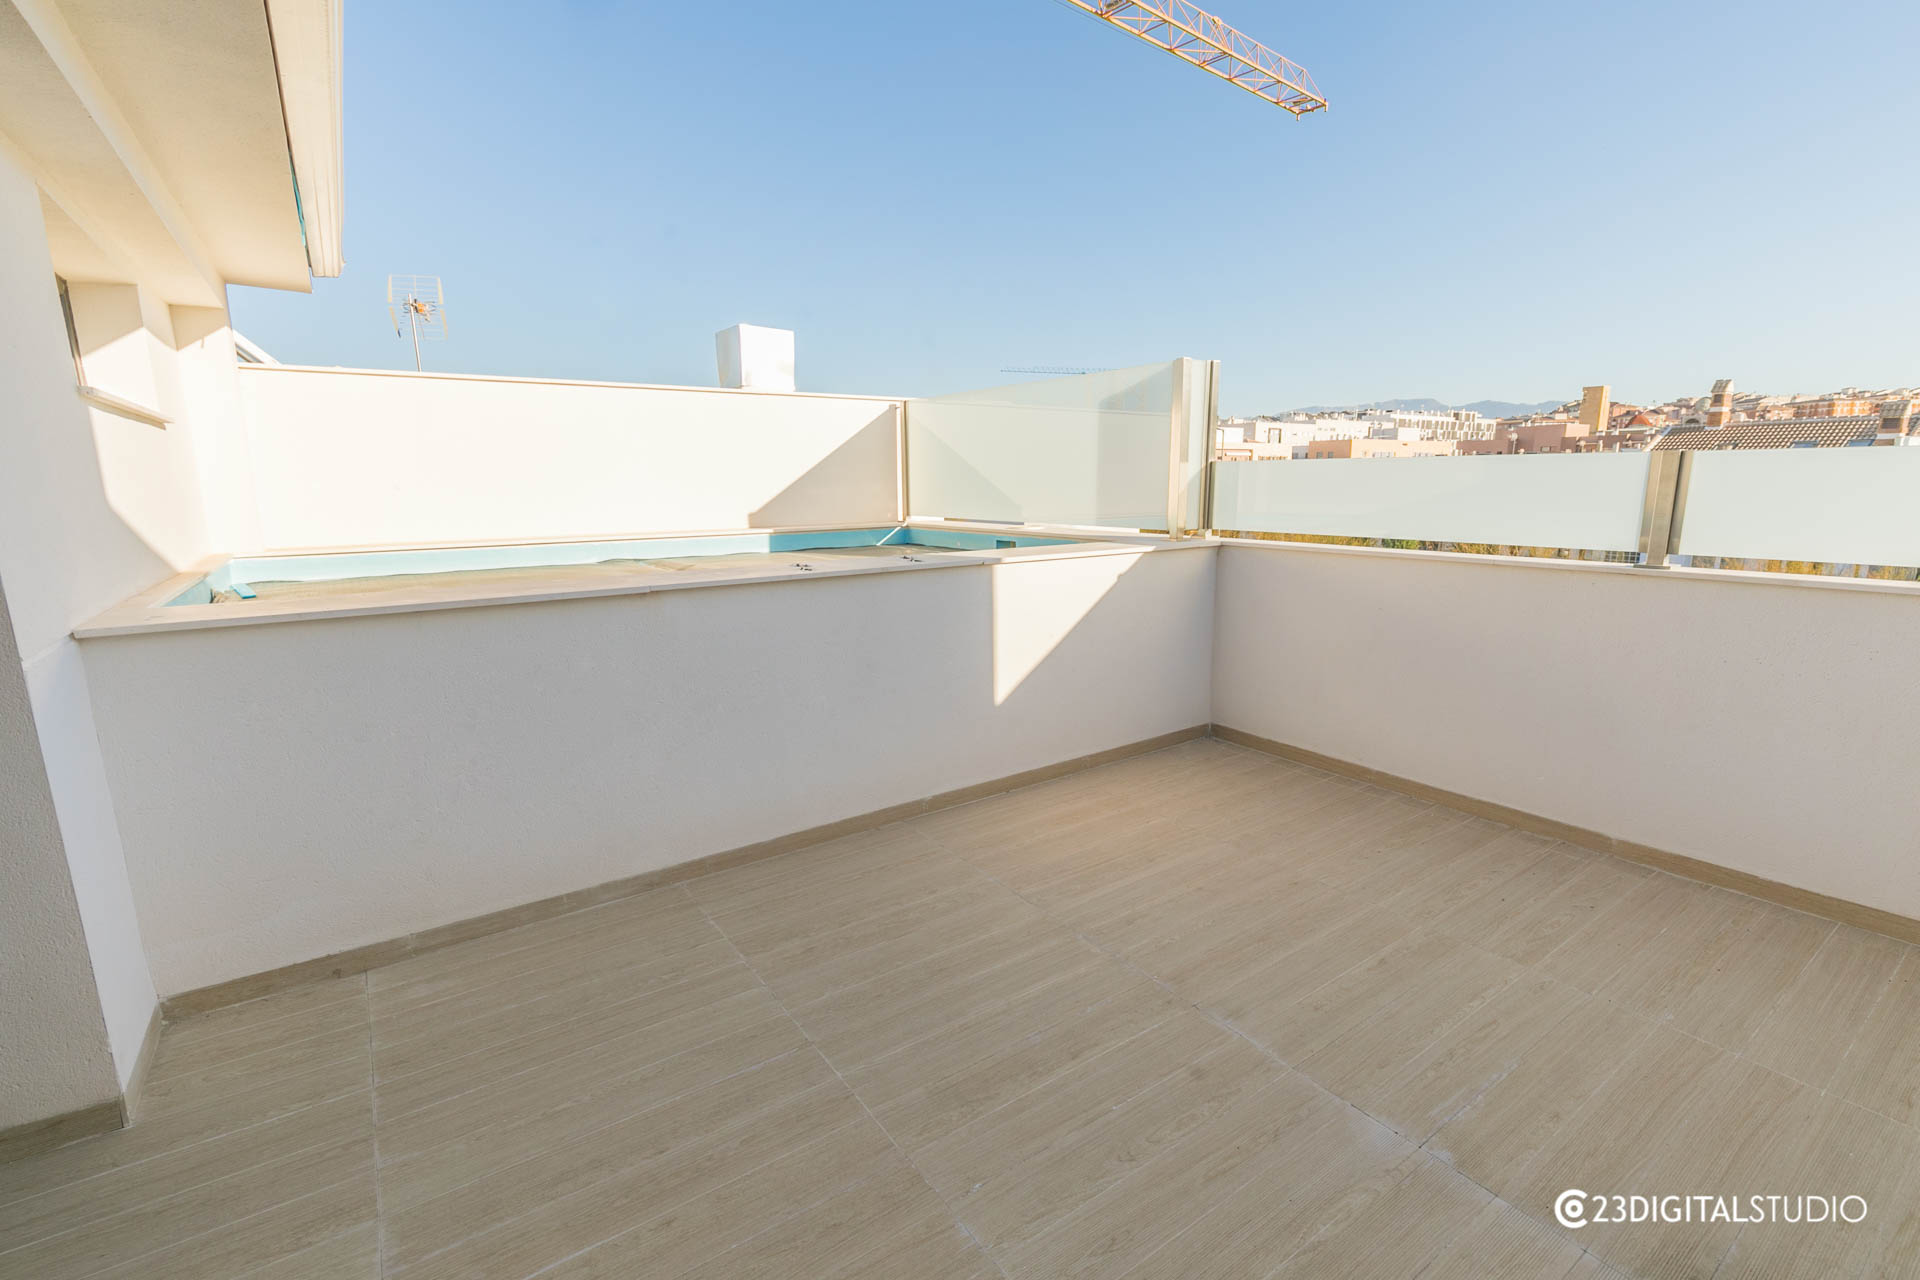 Fotografía y video inmobiliaria casa Jaén 23 Digital Studio